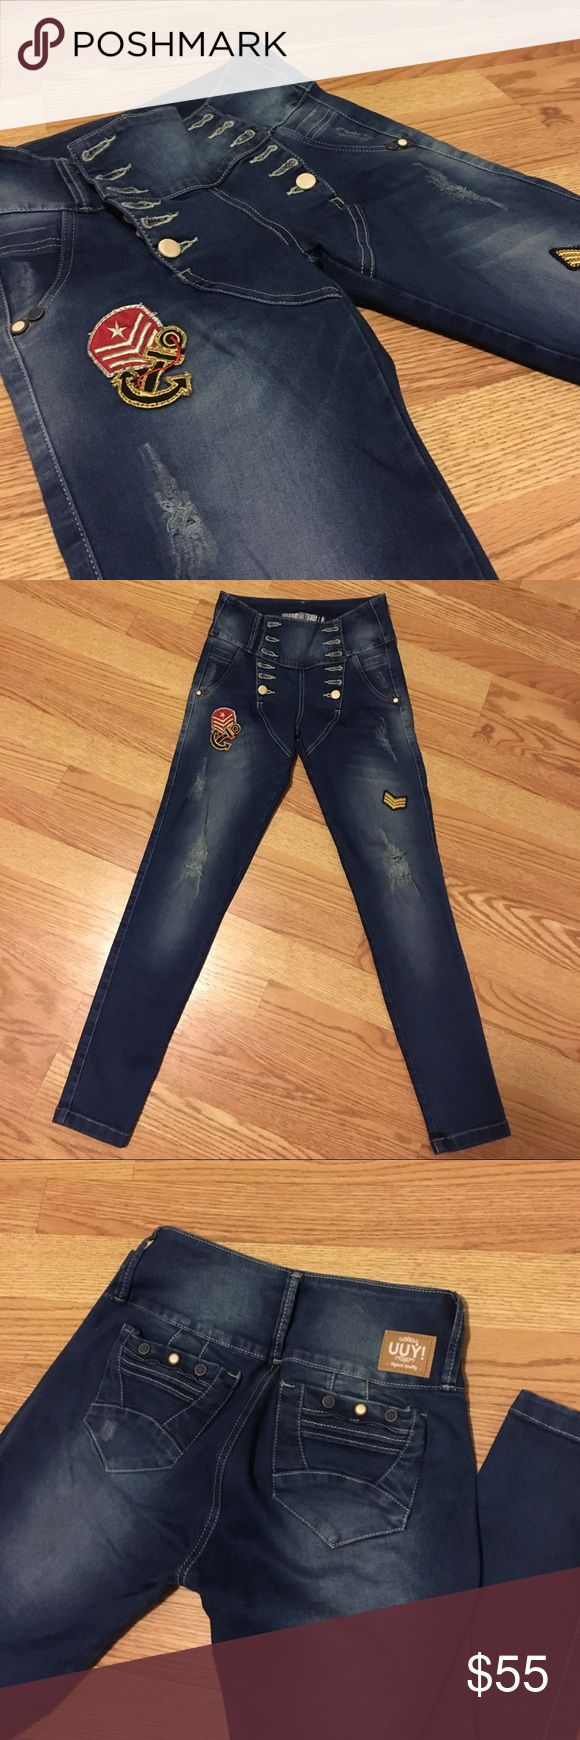 """Butt Lifting Jeans READ🇨🇴!! These are the Colombian """"Levanta cola"""" jeans. (Famous in Colombia for lifting your bottom) These are a Colombian size 8 which would fit a 3/4 in USA size! I'm usually a 5 stretch and my dad sent these so they don't fit me. NWOT! Make an offer. I'm sure you will be happy with them. And they have the trending patches which makes them even cuter! Originally $125 Colombian Jeans Jeans Skinny"""